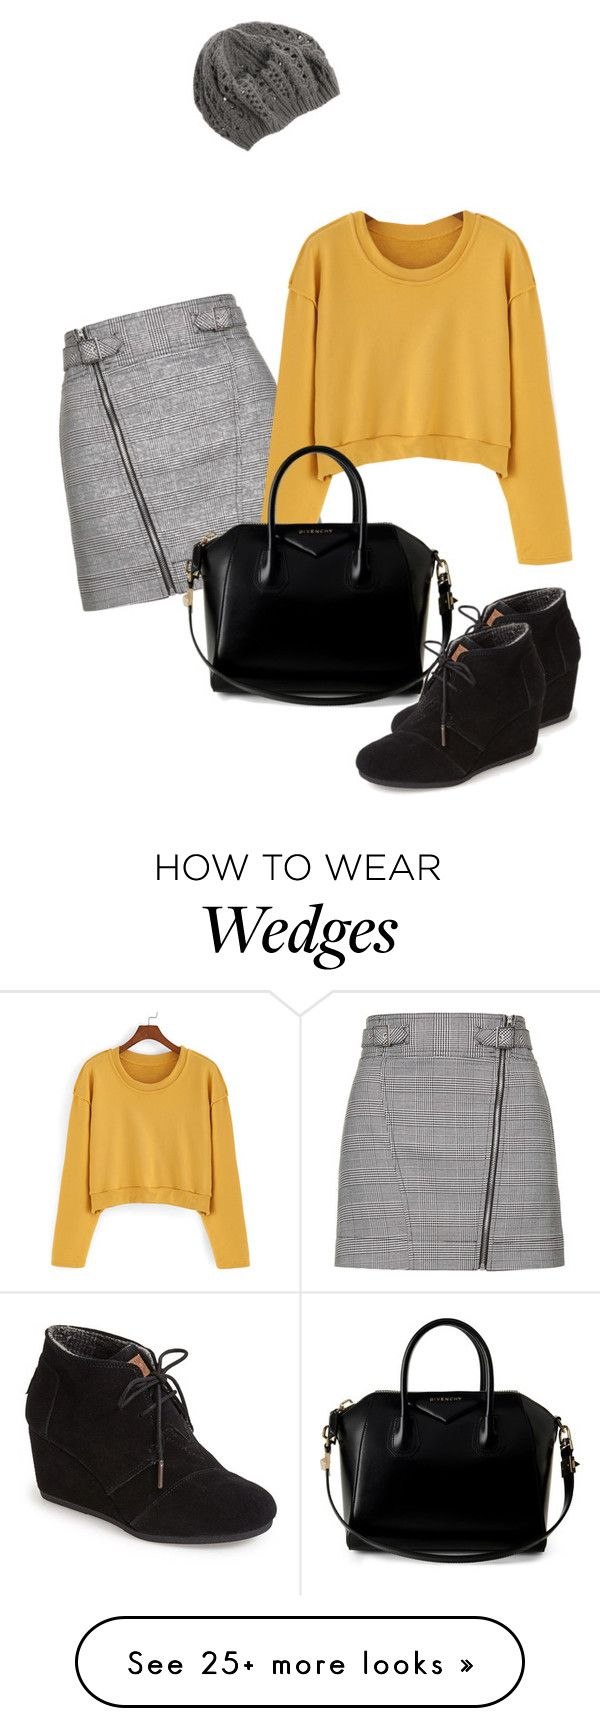 """Untitled #487"" by indirareeves on Polyvore featuring Topshop, Givenchy and TOMS"